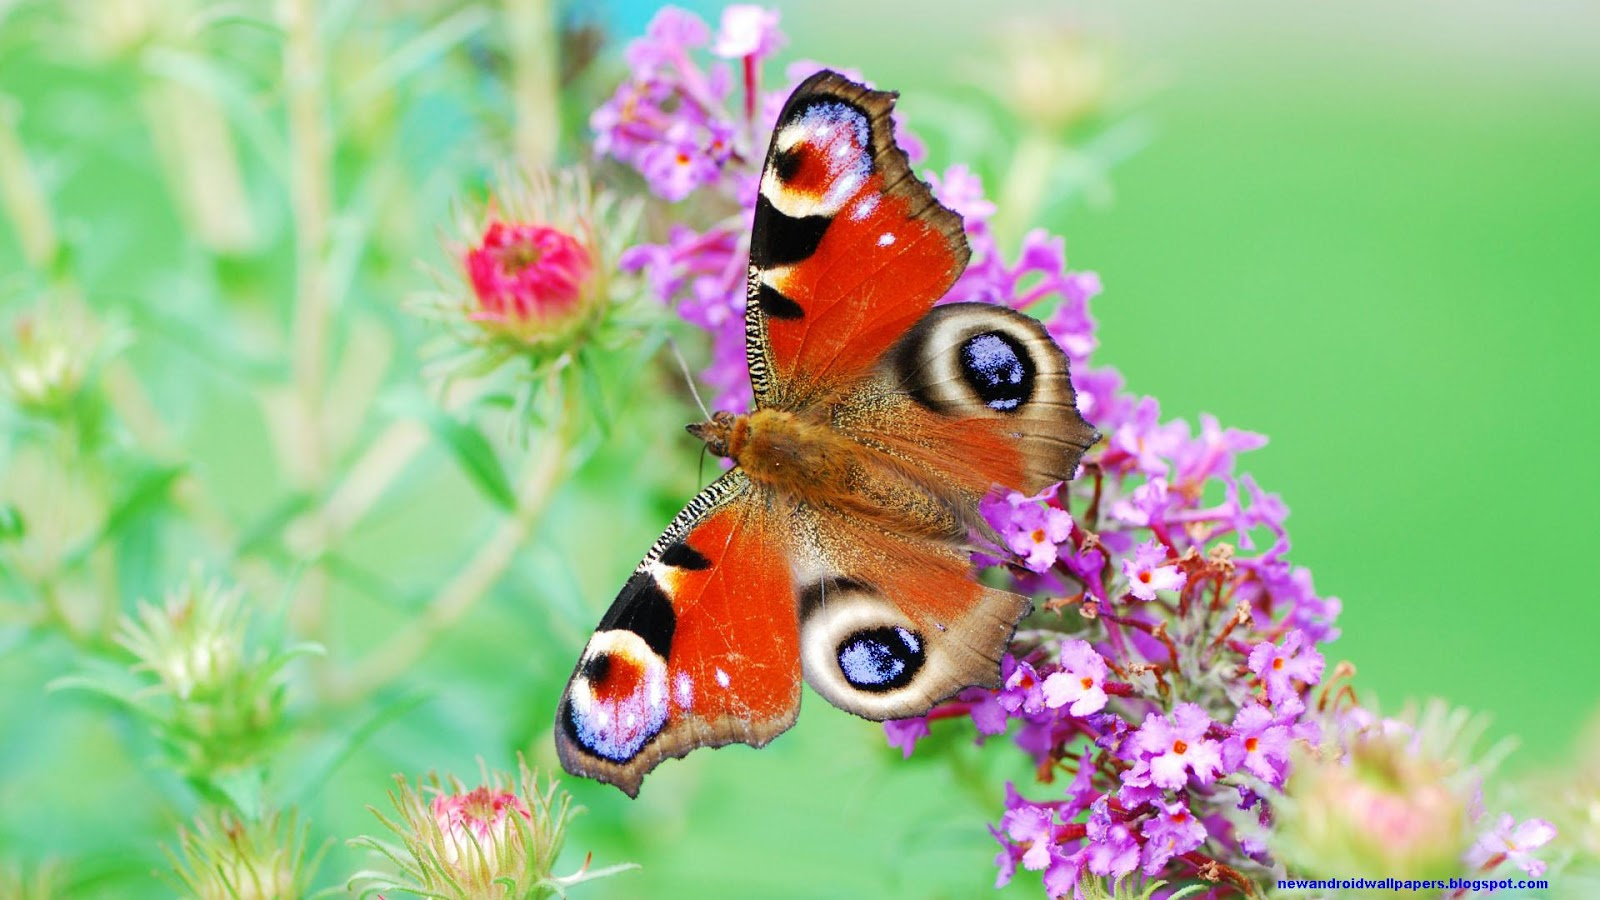 Beautiful butterfly with flowers hd wallpapers free for android beautiful butterfly sitting on flower hd wallpapers for android and desktop voltagebd Choice Image